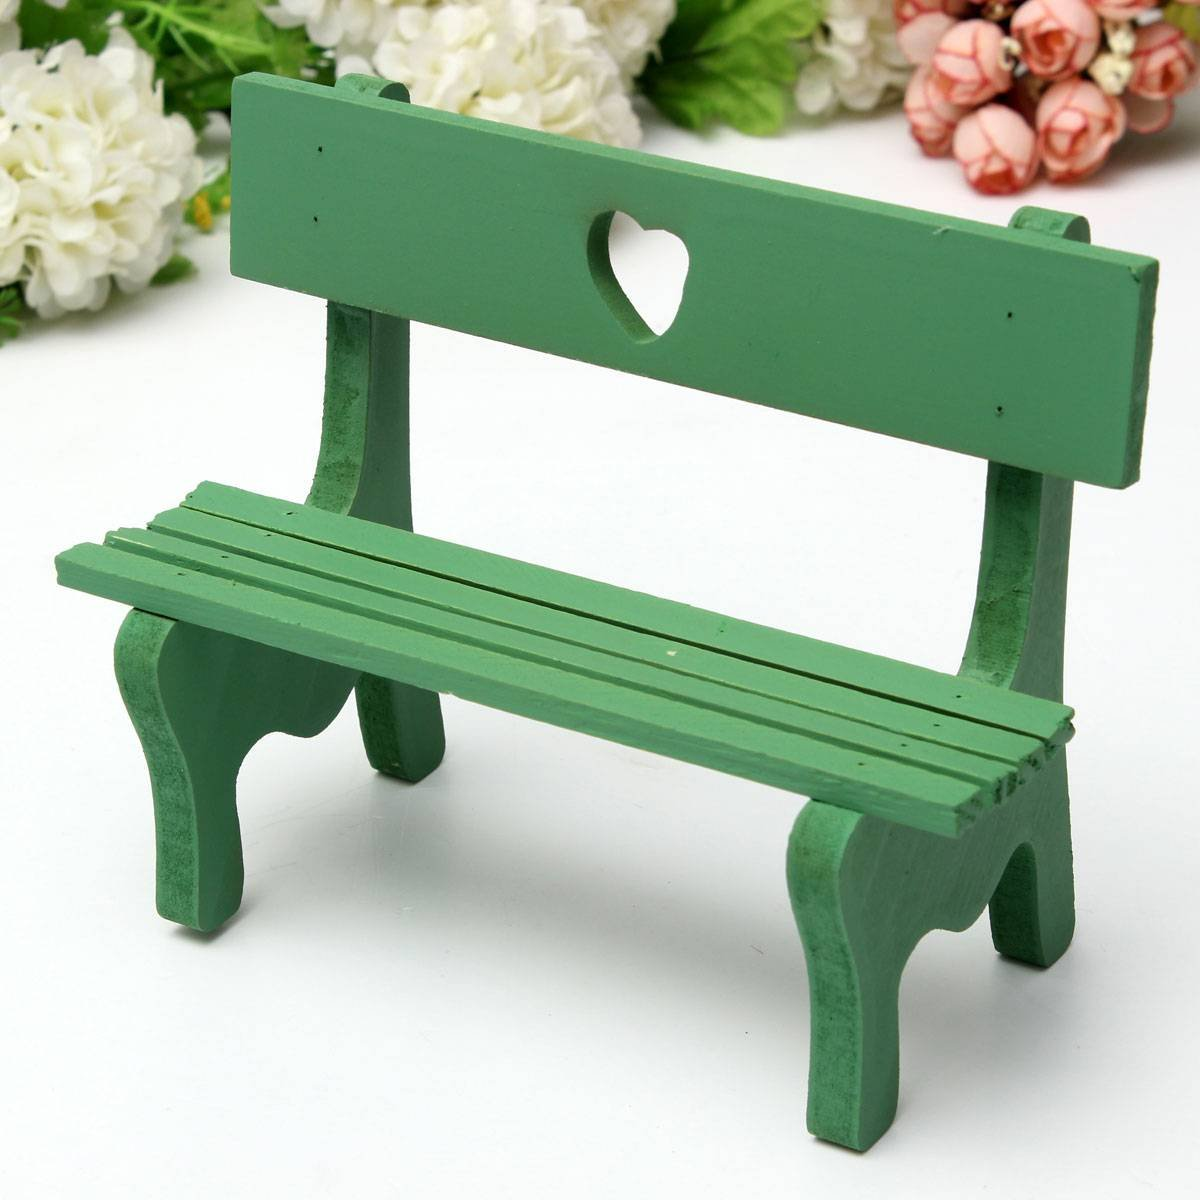 miniature landscape plant diy craft garden decor green chair bench n3